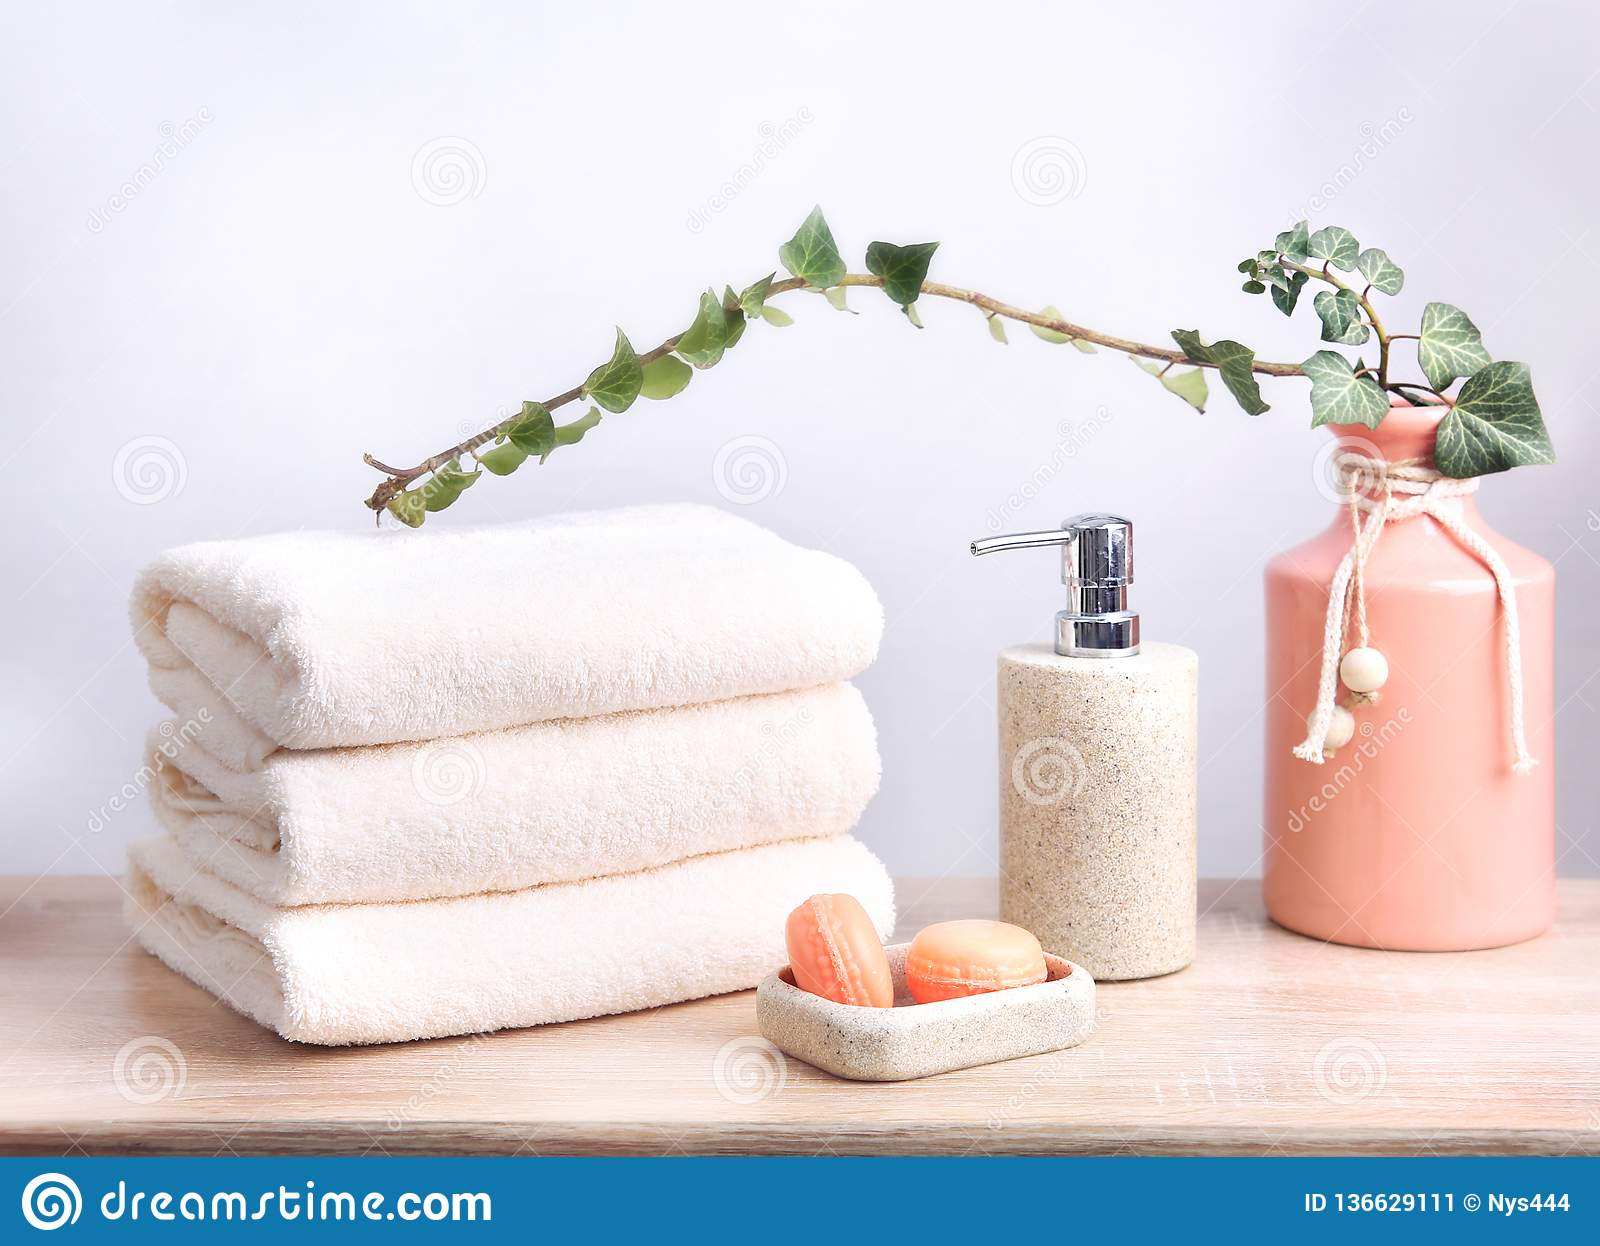 Stack Of Folded Towels Bathroom Objects Body Care Items Stock Image Image Of Care Natural 136629111